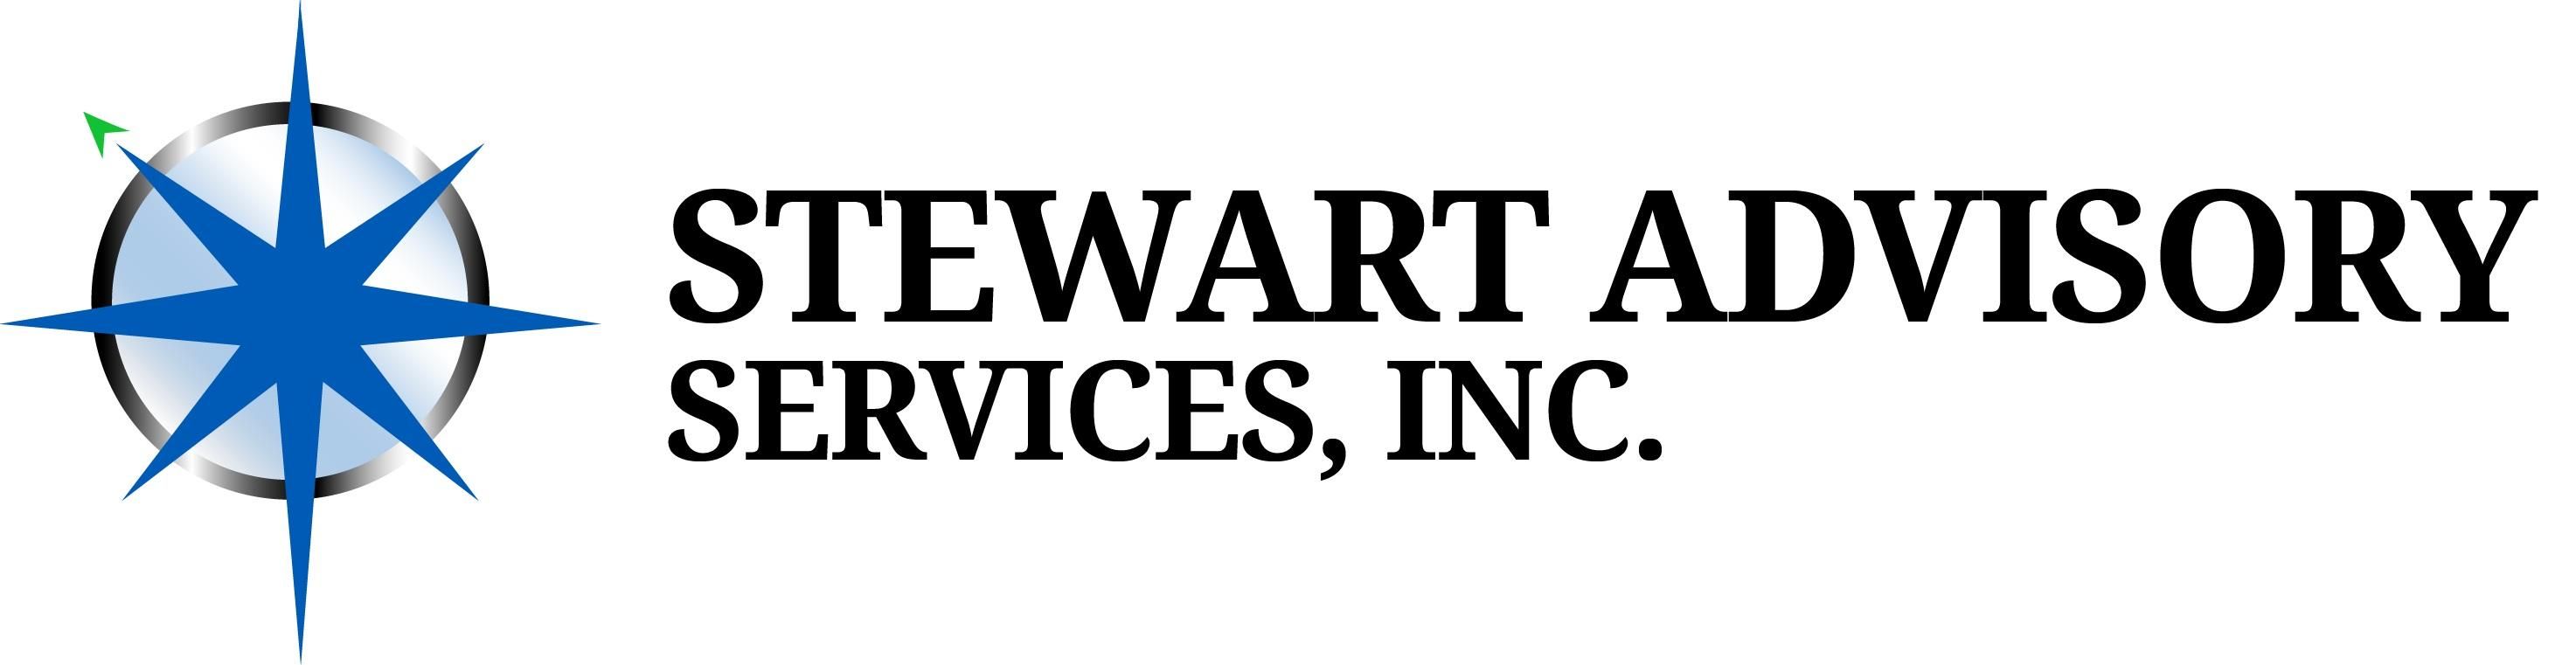 Stewart Advisory Services, INC.